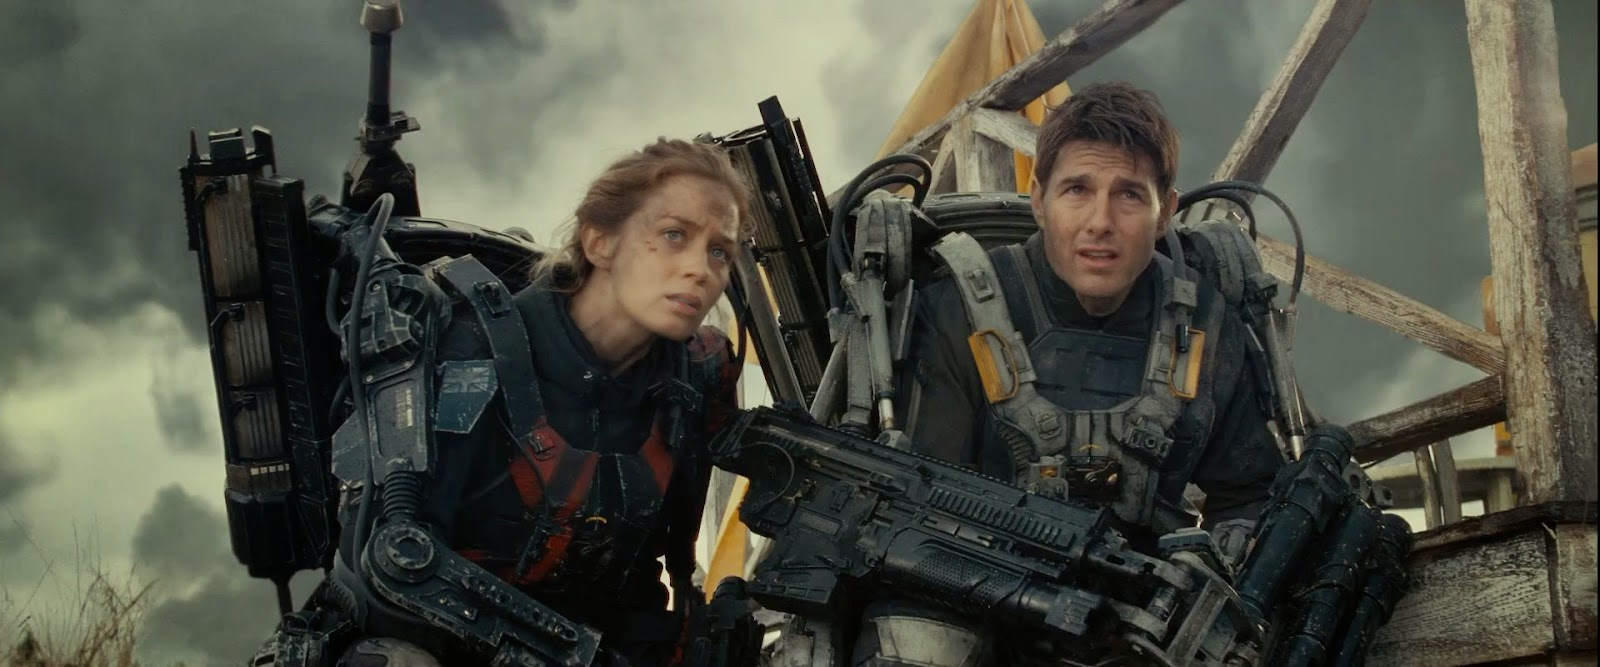 Edge Of Tomorrow (2014) S3 s Edge Of Tomorrow (2014)